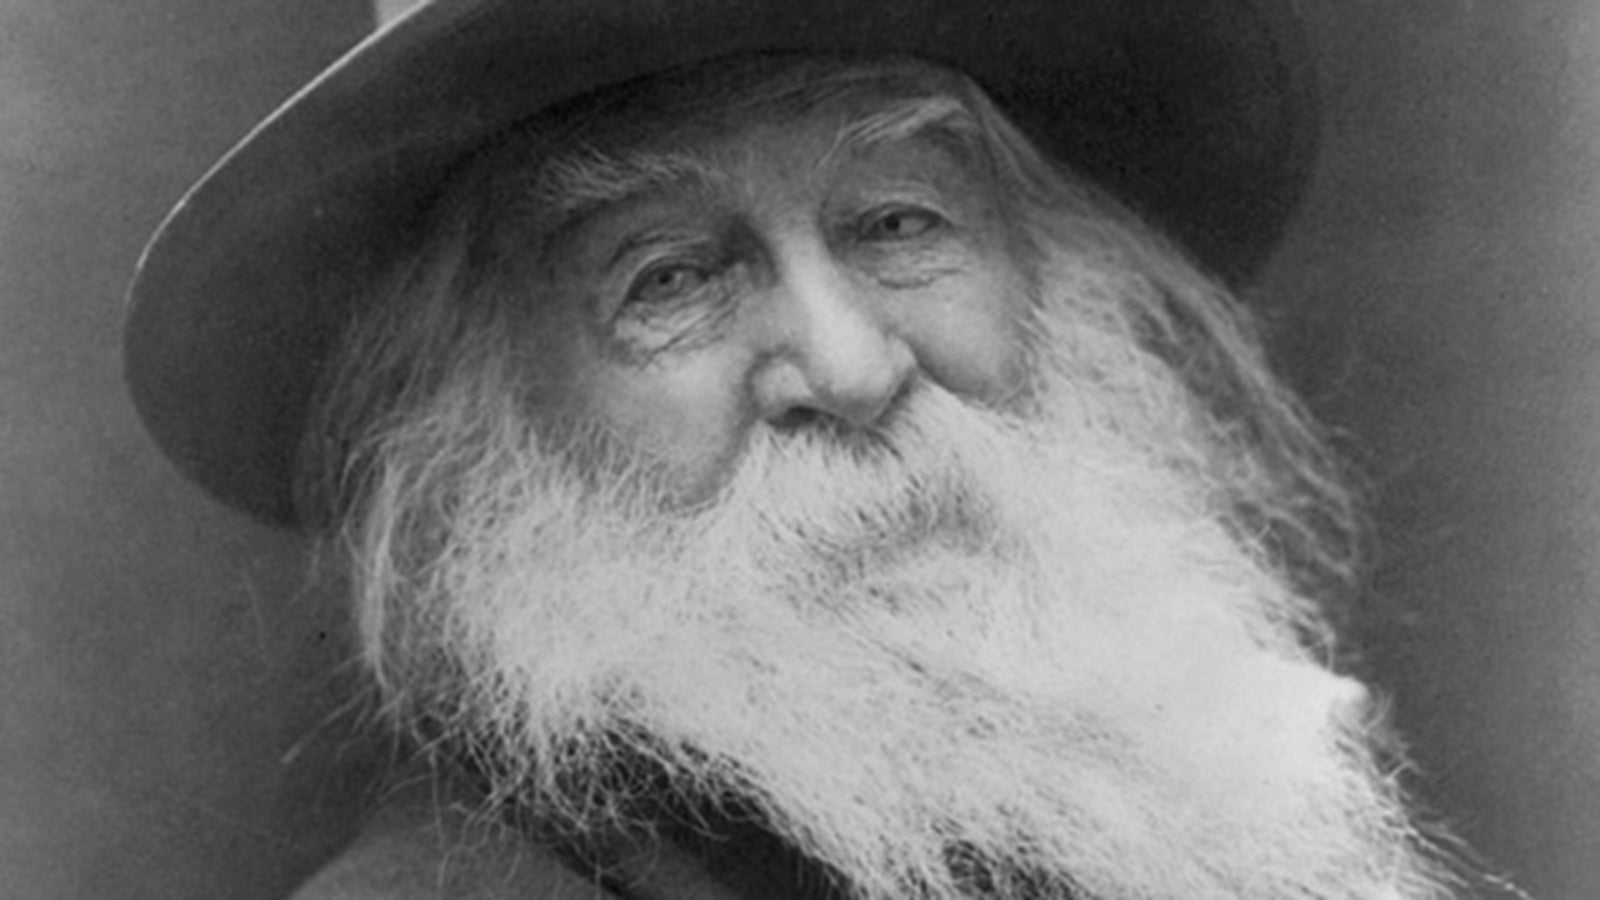 A close up black and white photograph of an elderly Walt Whitman, with a long white beard, wearing a dark wide-brimmed hat